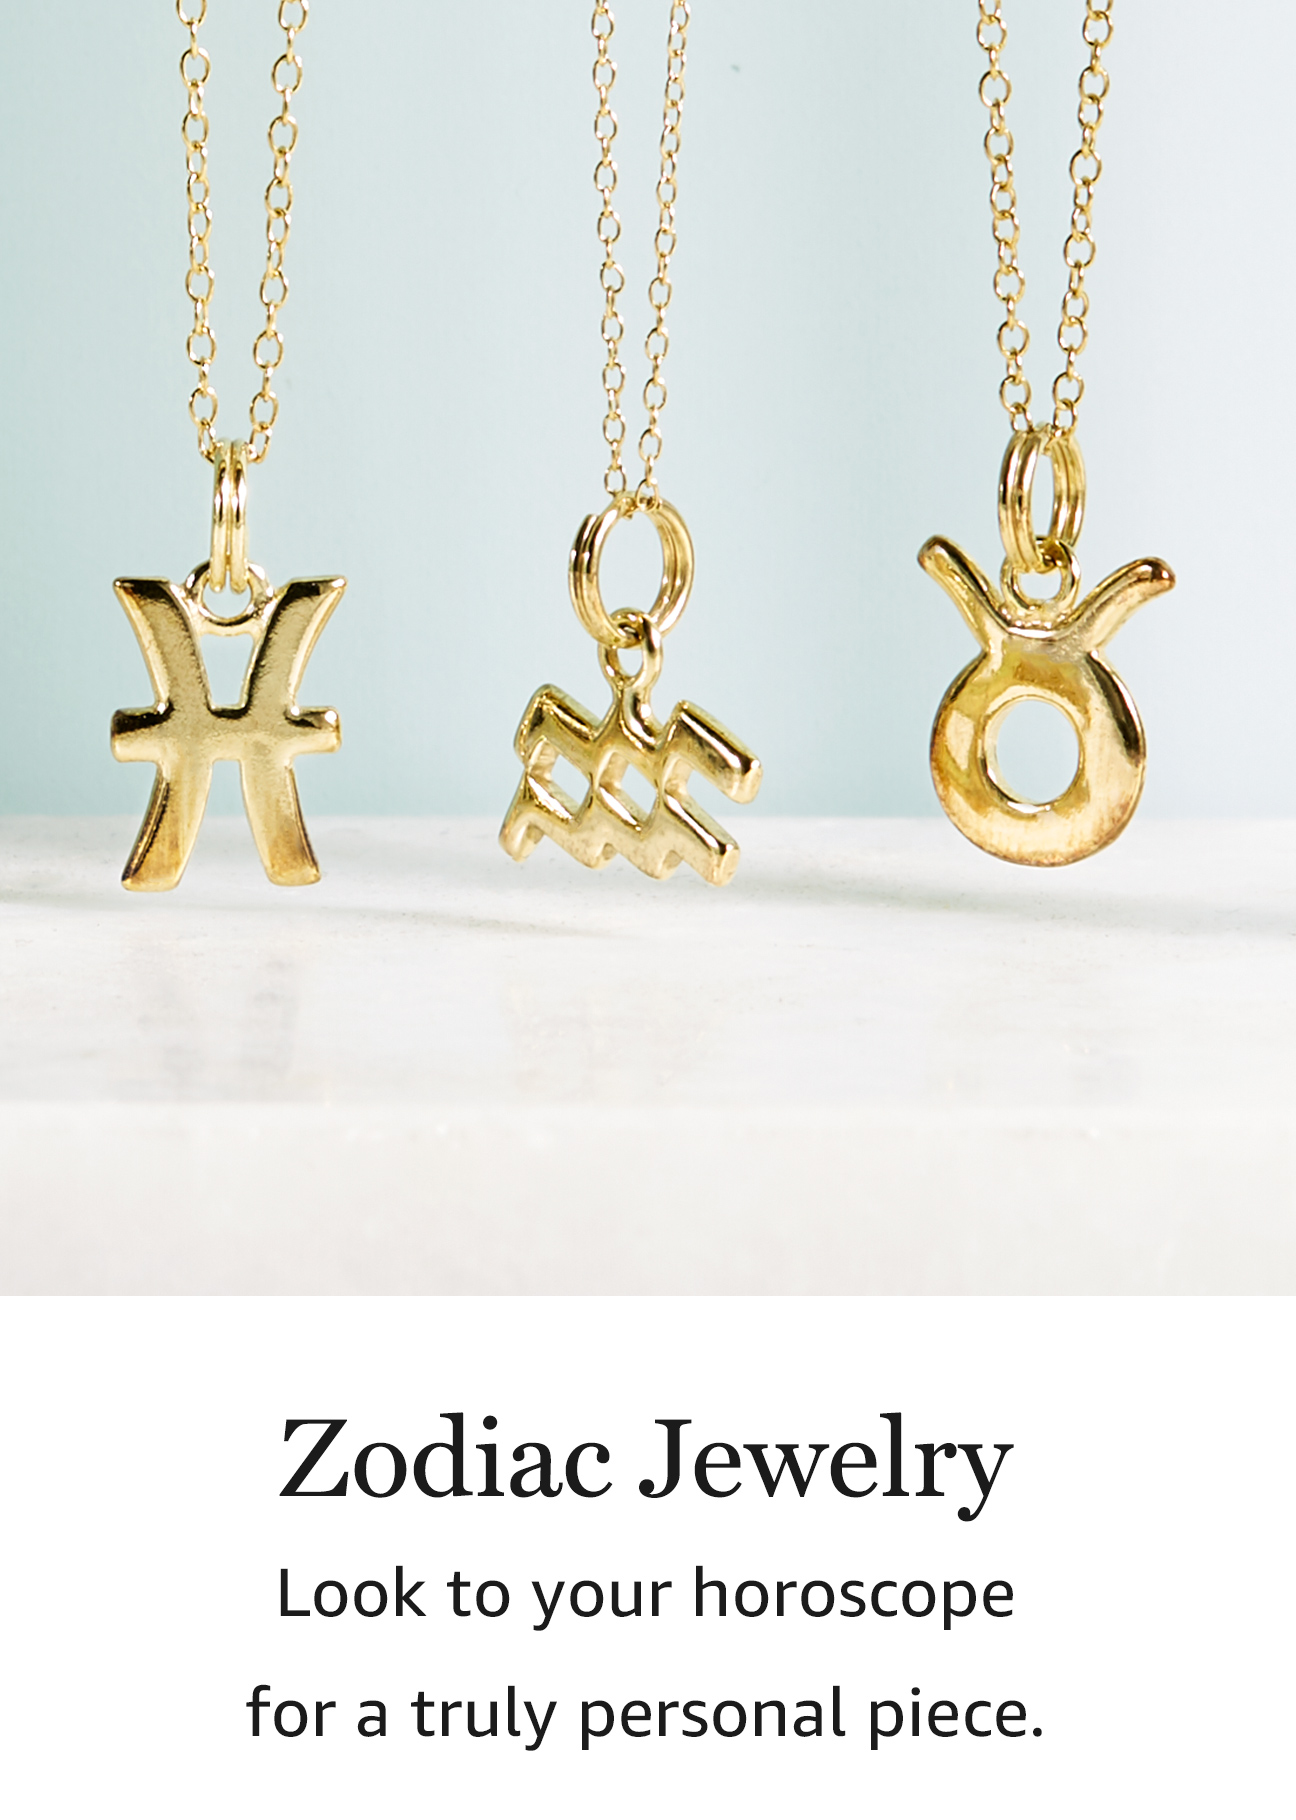 Zodiac Jewelry: Look to your horoscope for a truly personal piece.